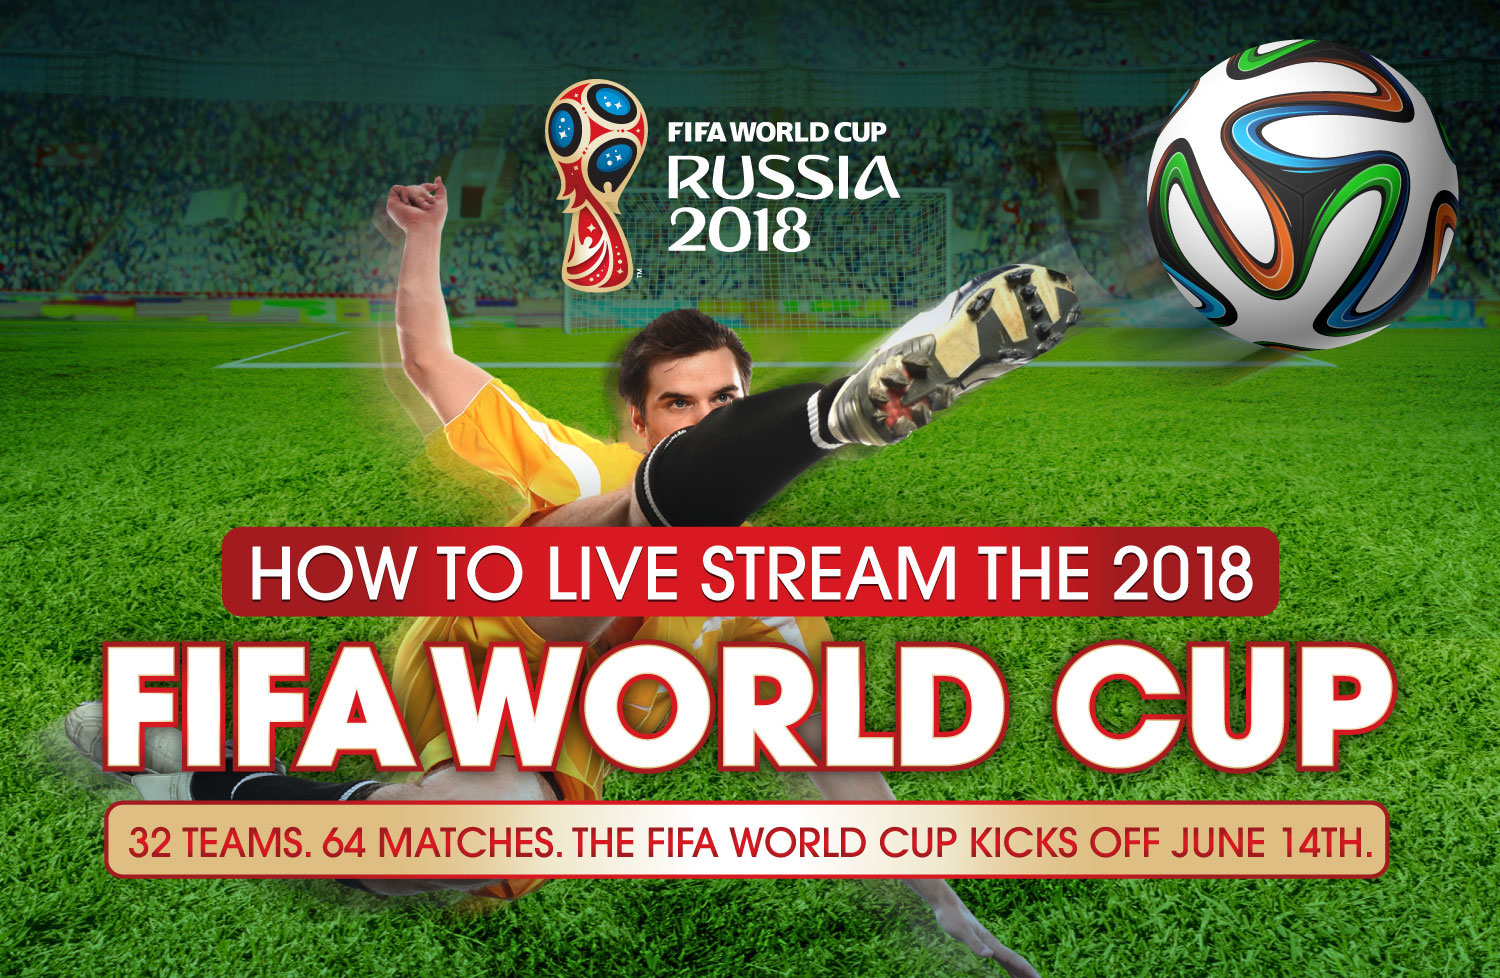 How to live stream the fifa world cup 2018